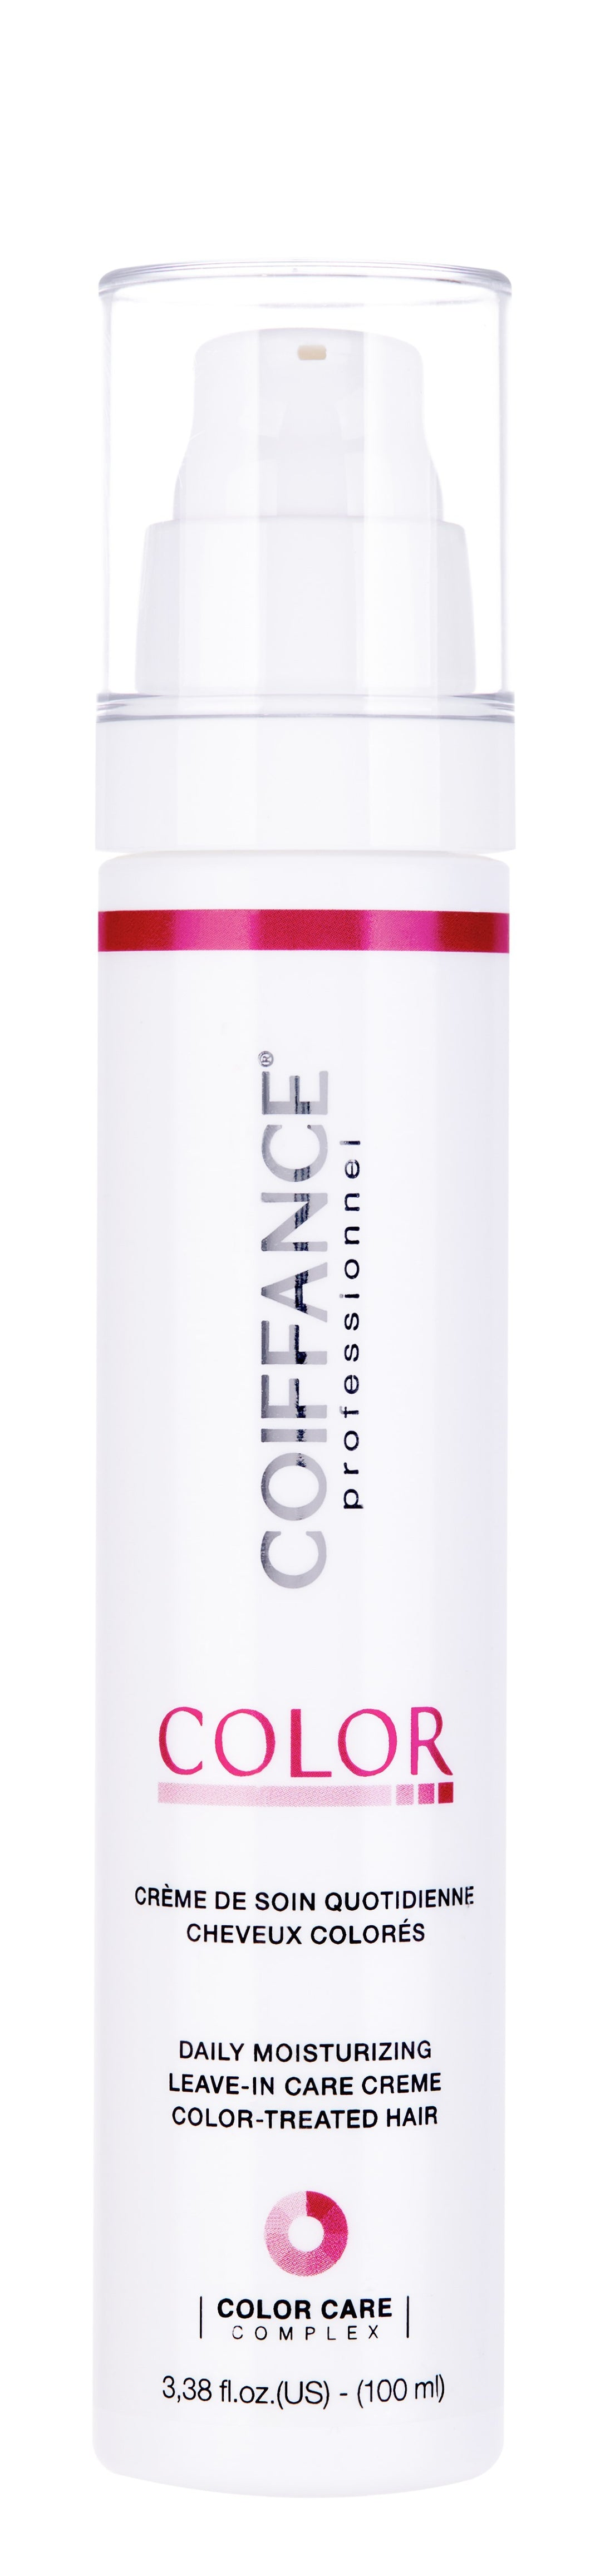 color moisturizing leave in care creme